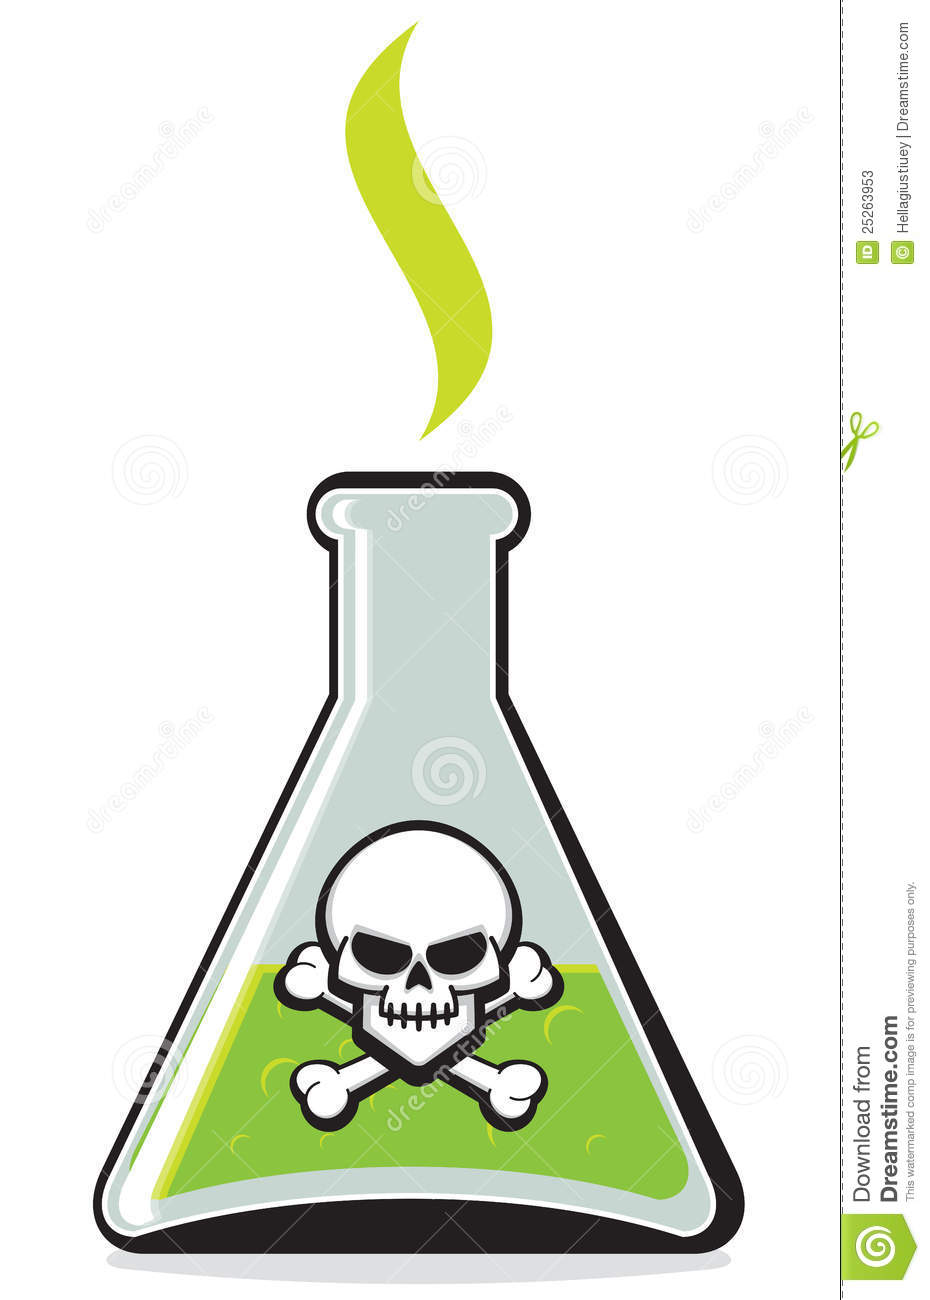 ... bottle with green dangerous liquid in it with skull and crossbones